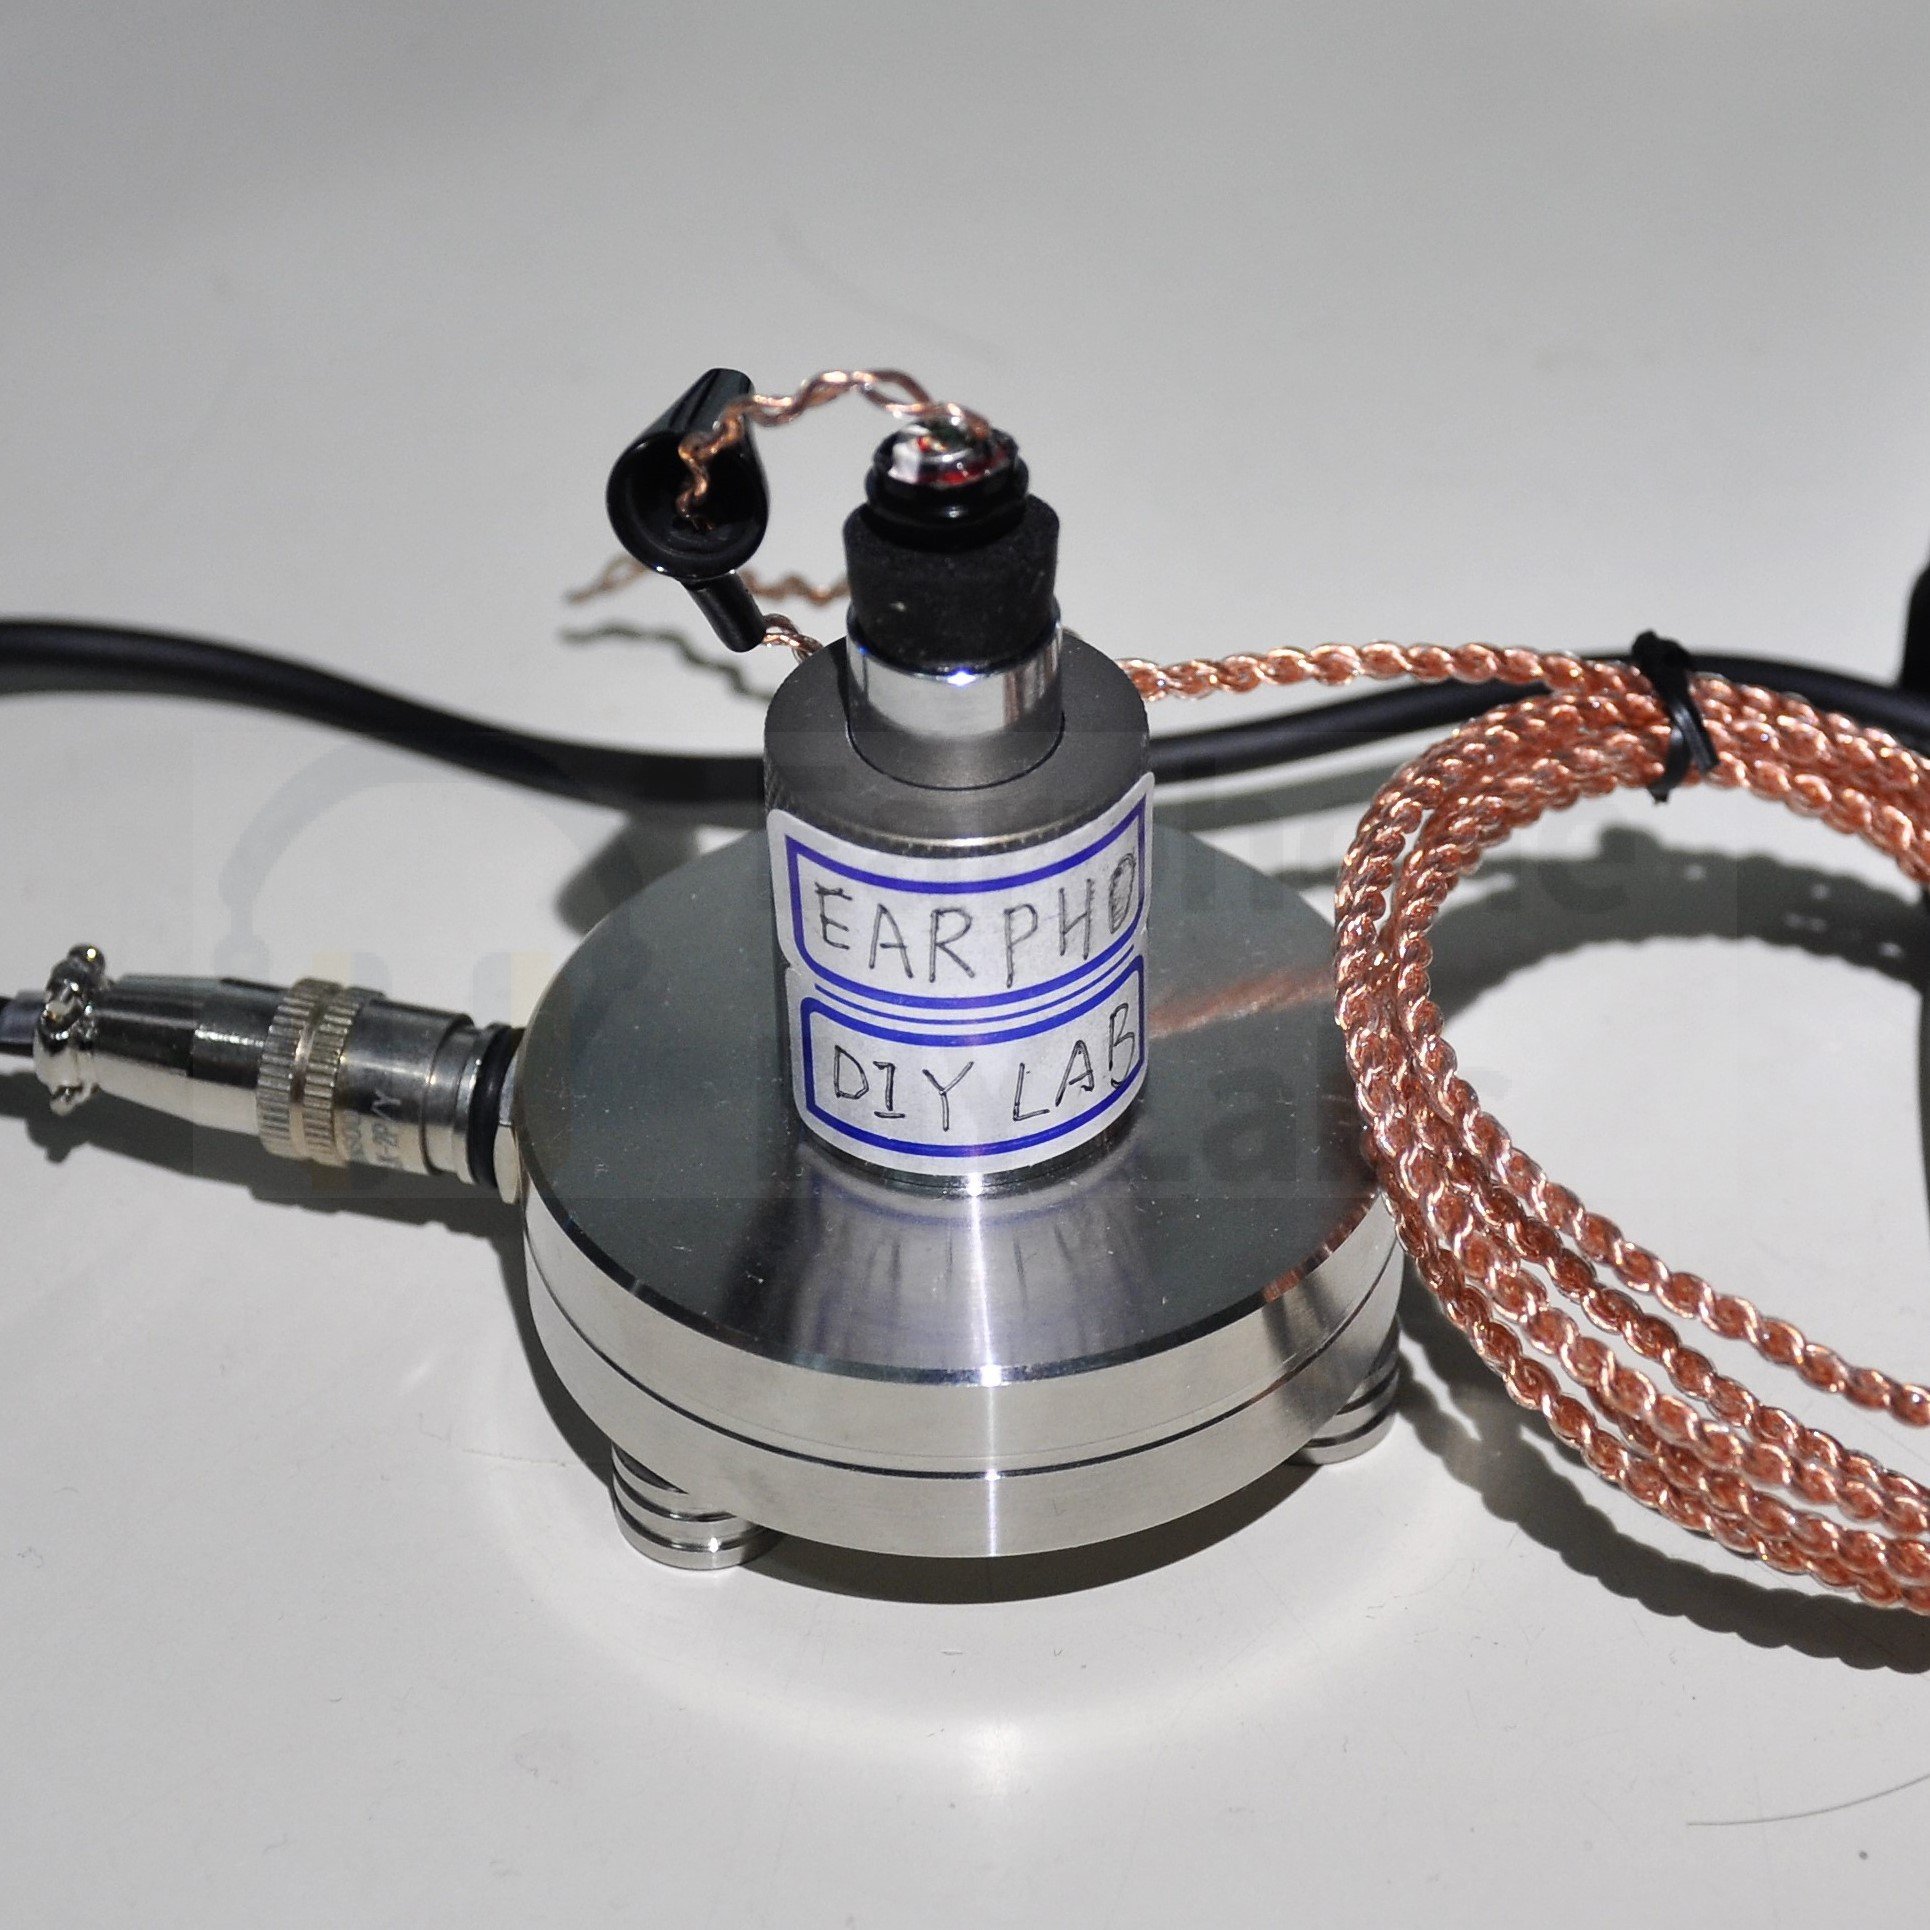 The IEC 711 coupler measuring (open space) the Ultra Low THD Titanium Driver Unit and 6N OCC cable Kit